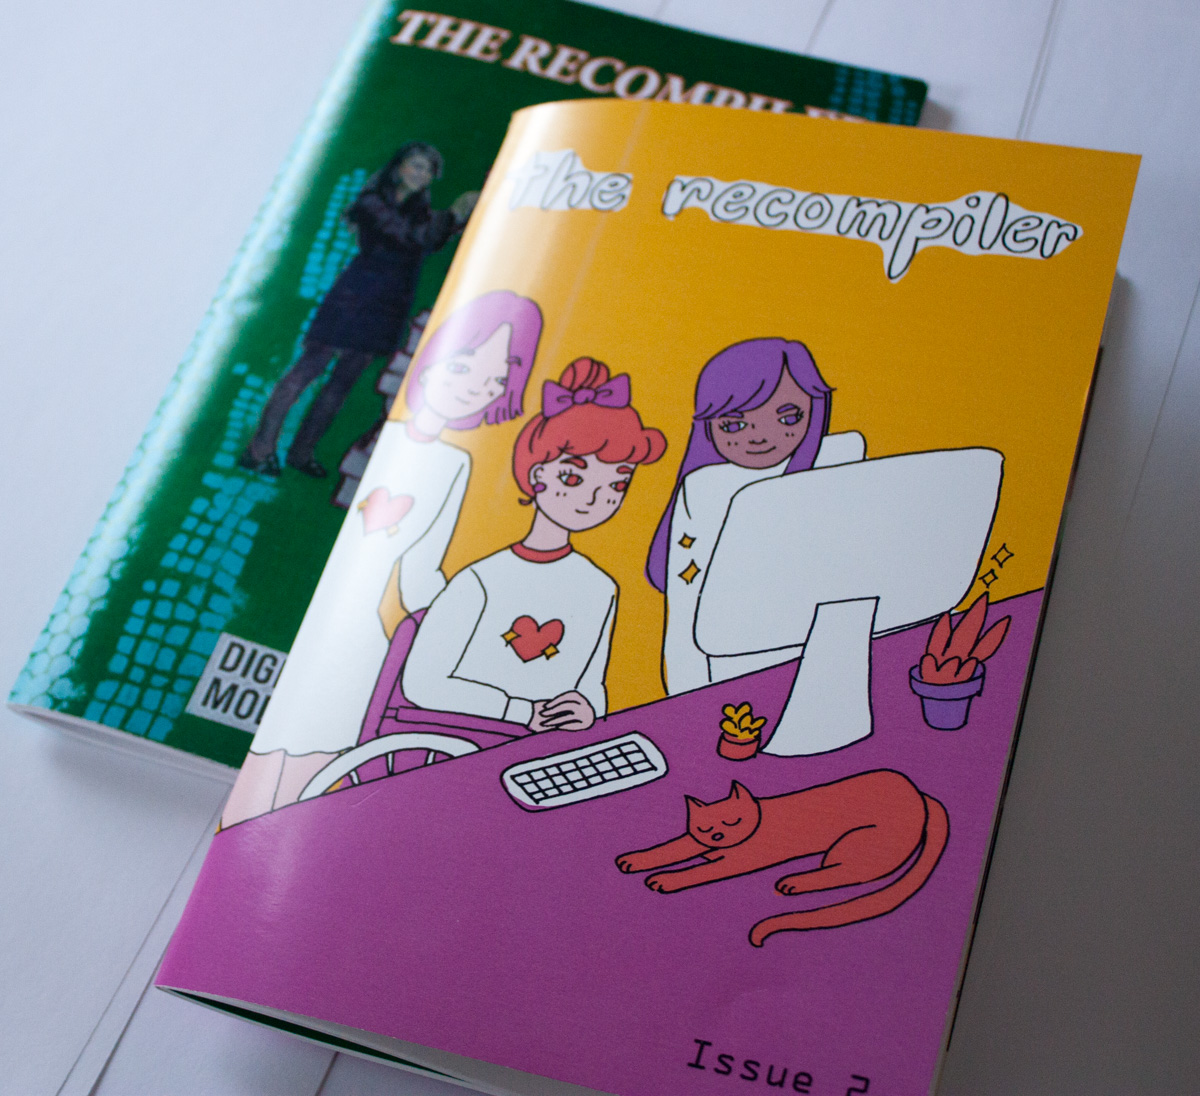 Print Issues of The Recompiler